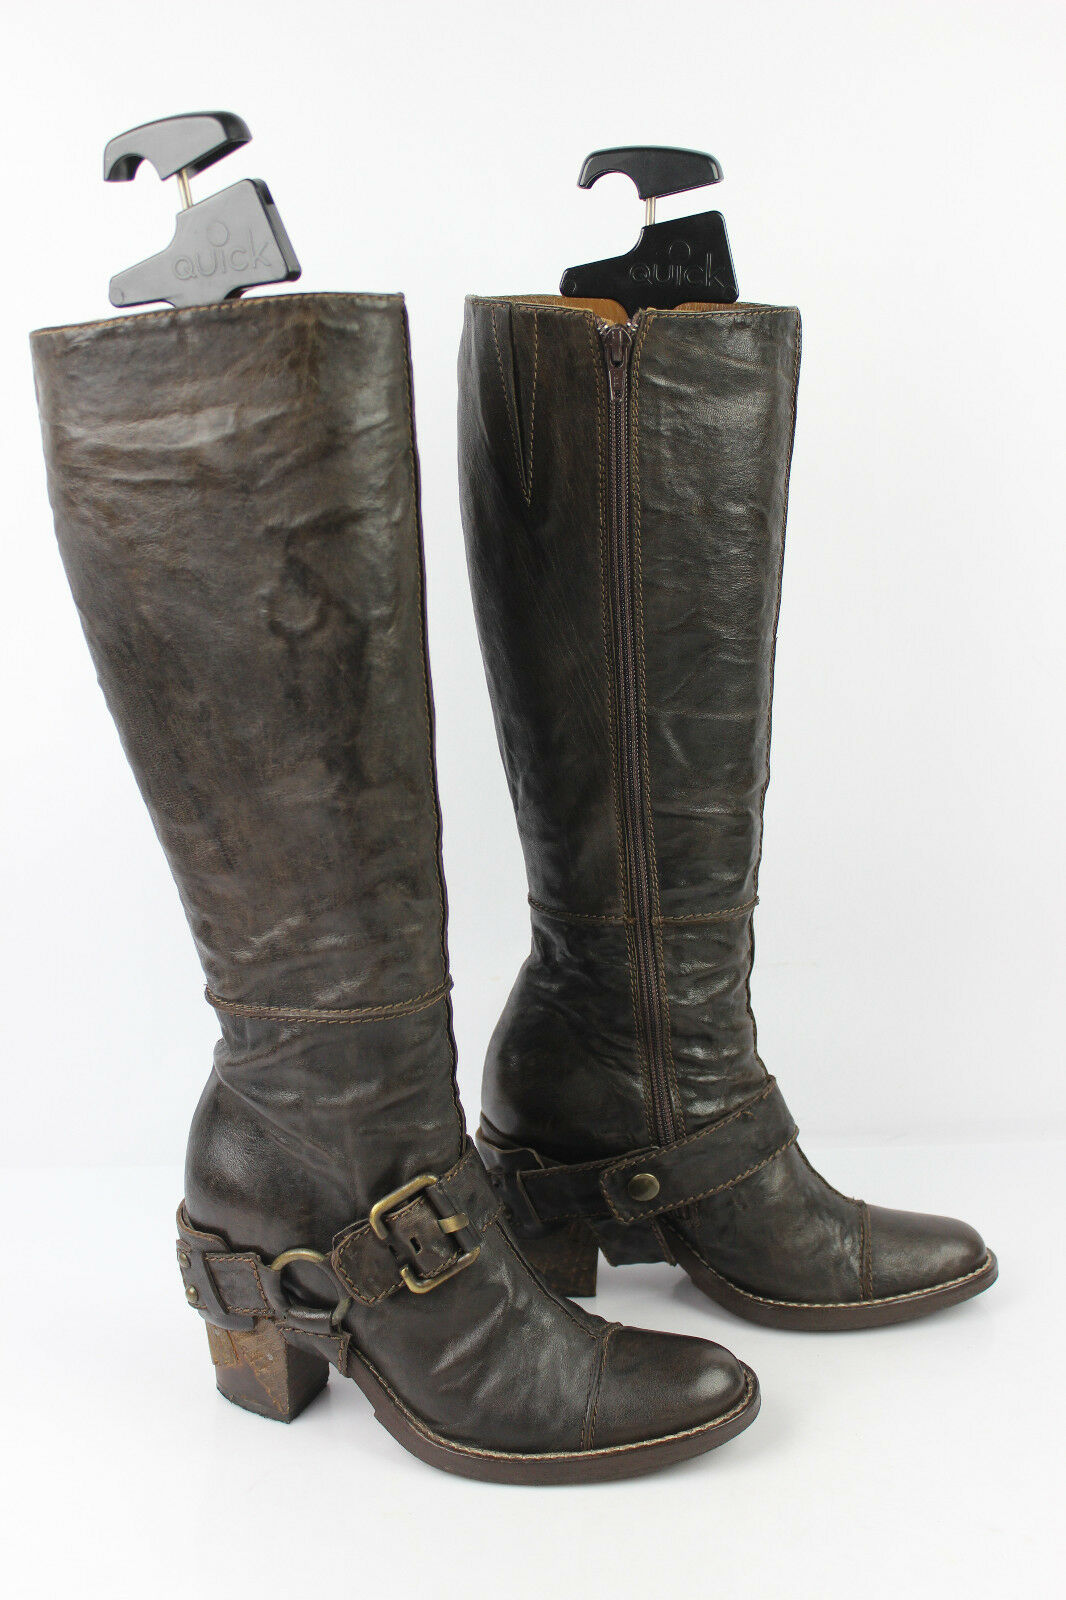 Dyva boots made in italy brown all leather size 35 --   36 tres bon etat